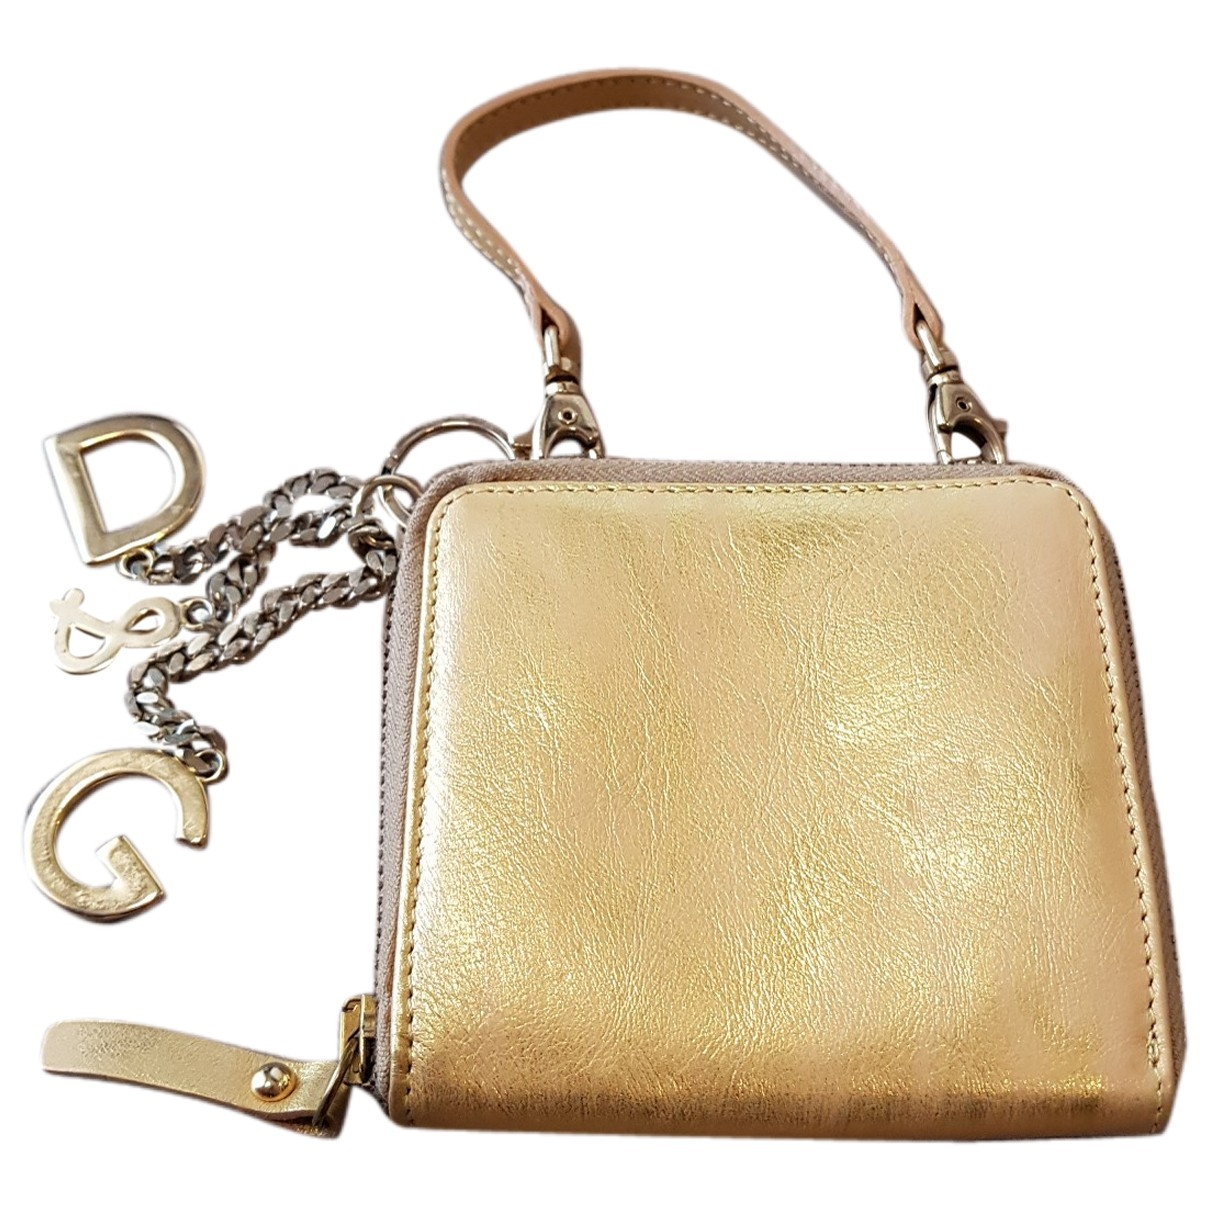 D&g \N Gold Patent leather Clutch bag for Women \N